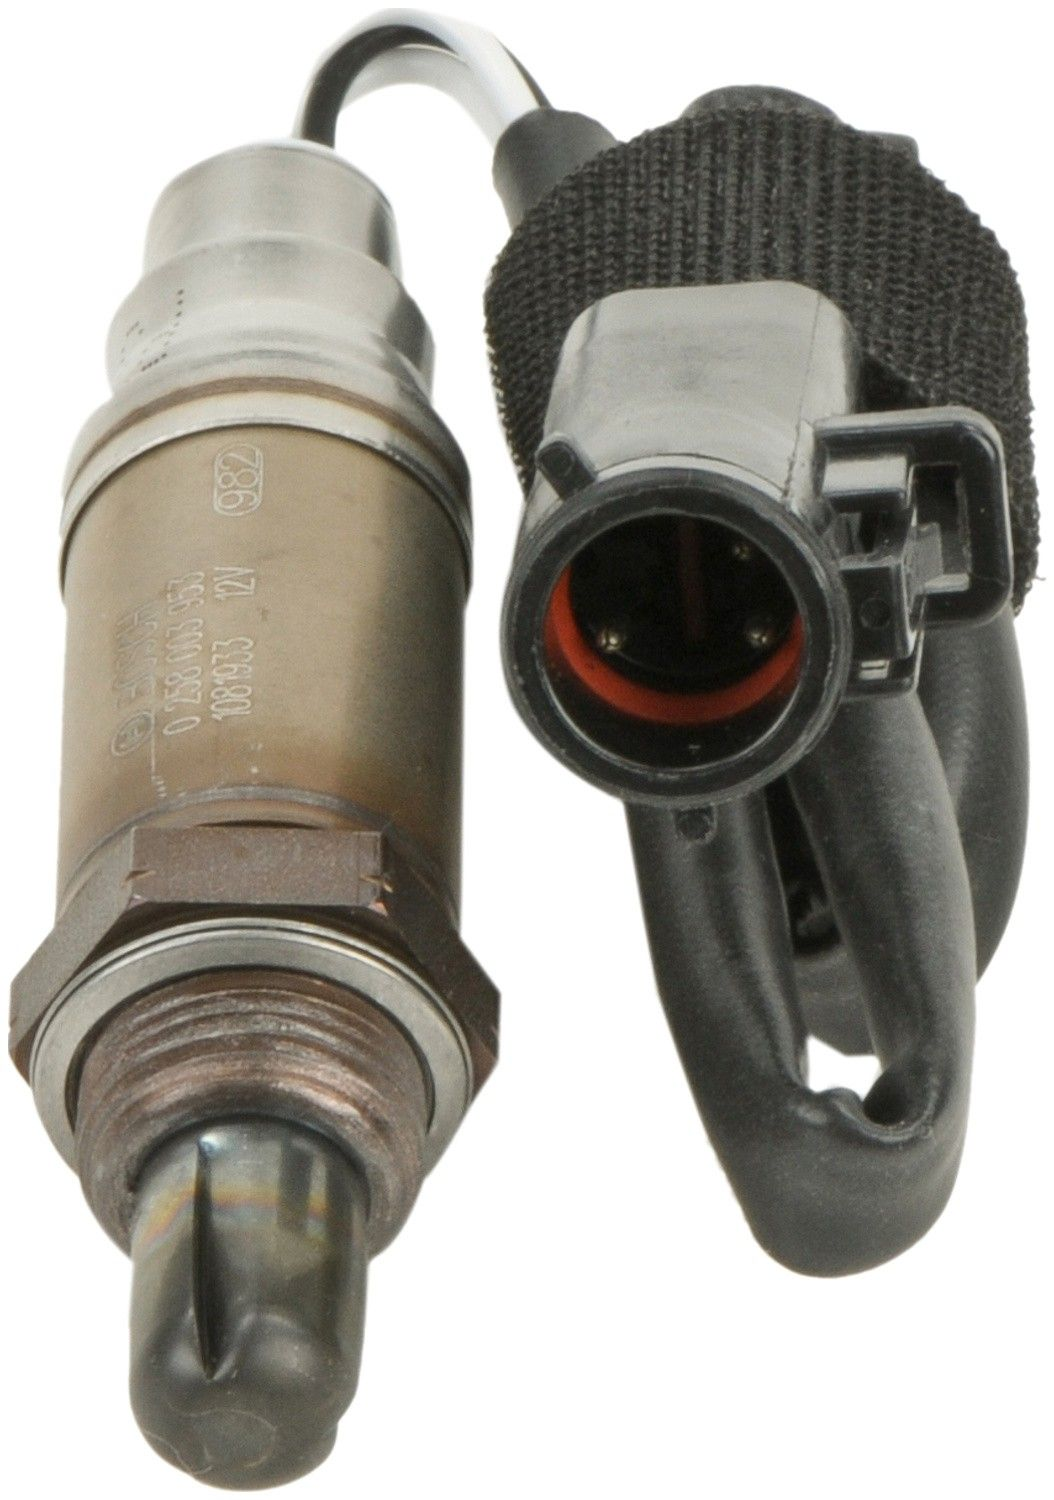 Ford F Super Duty Oxygen Sensor Replacement Bosch Delphi Denso Wiring 1990 1988 Upstream 8 Cyl 75l 13953 Is The Oe Equivalent Supplier